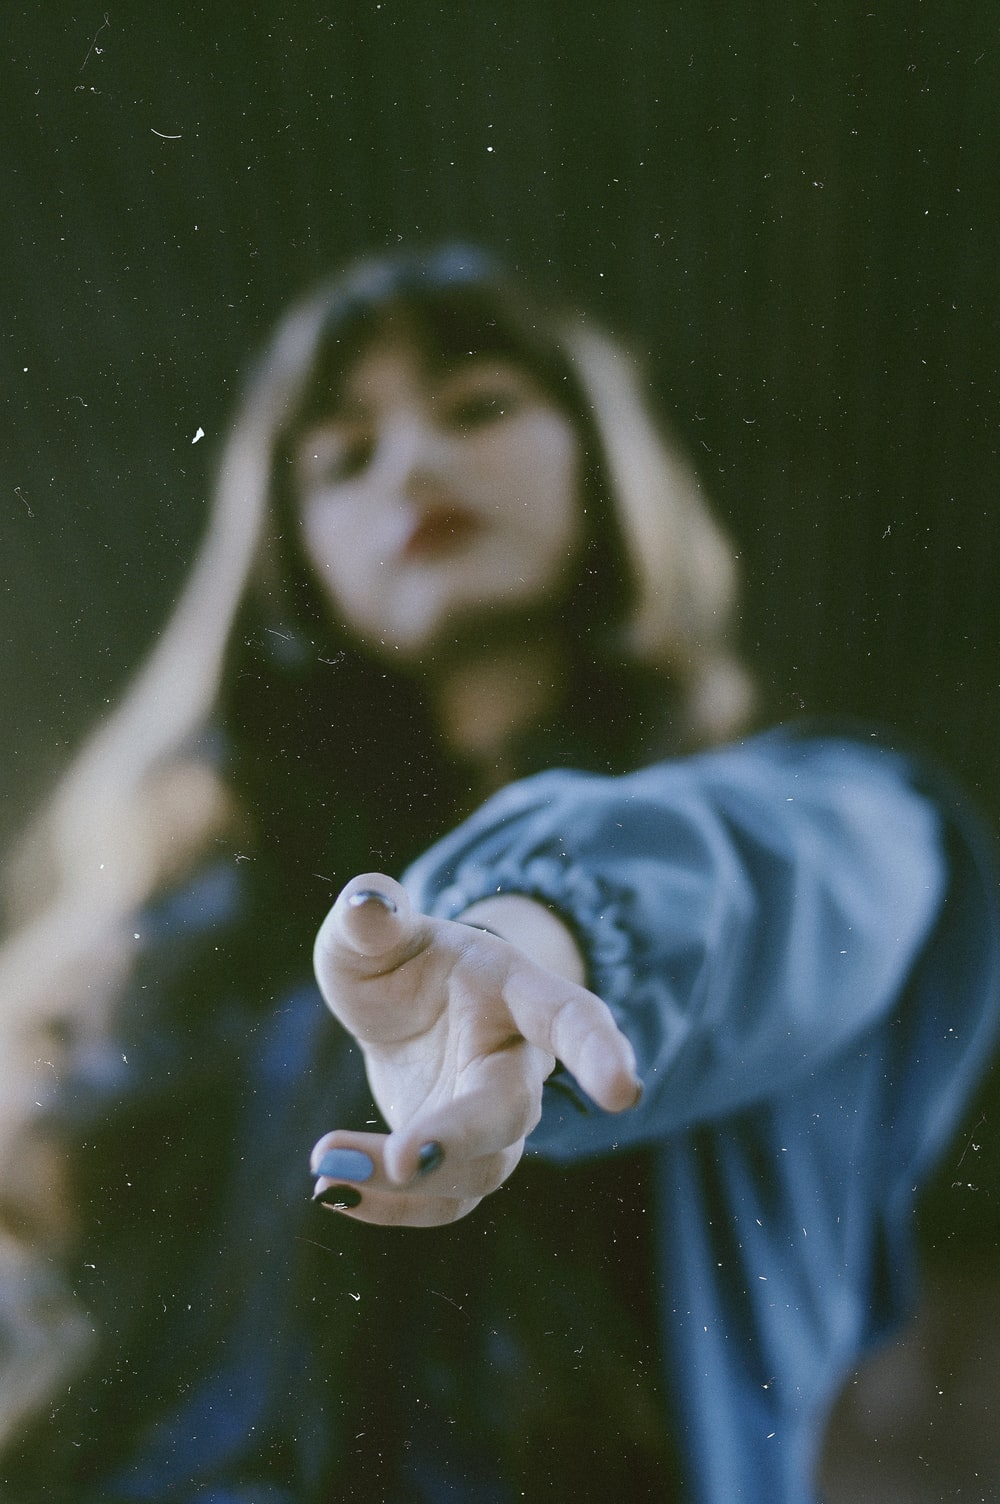 woman in blue jacket reaching out using left hand